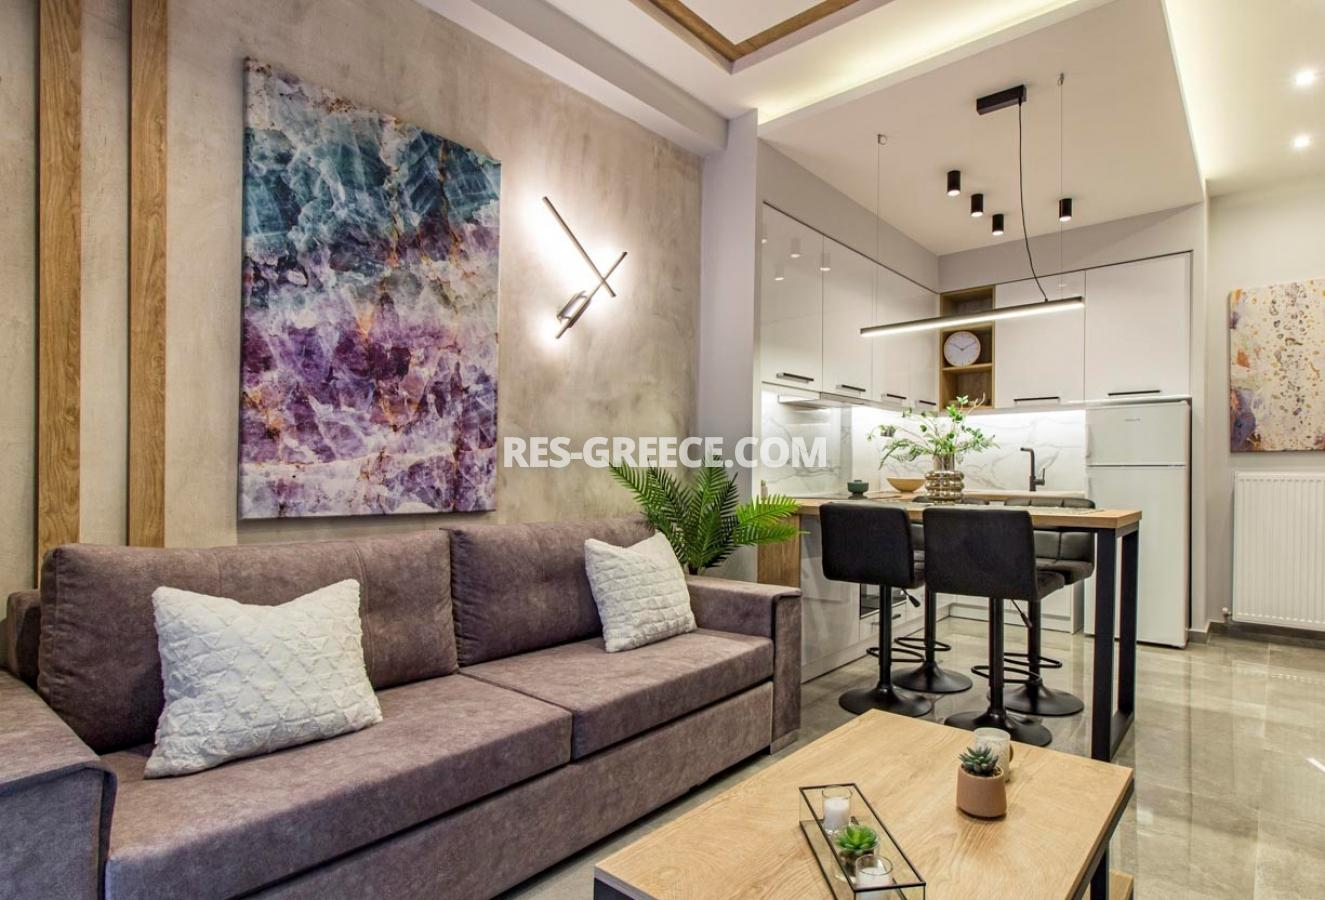 ?.Foka B, Central Macedonia, Greece - apartments in Thessaloniki center for long-term or short-term rent - Photo 4